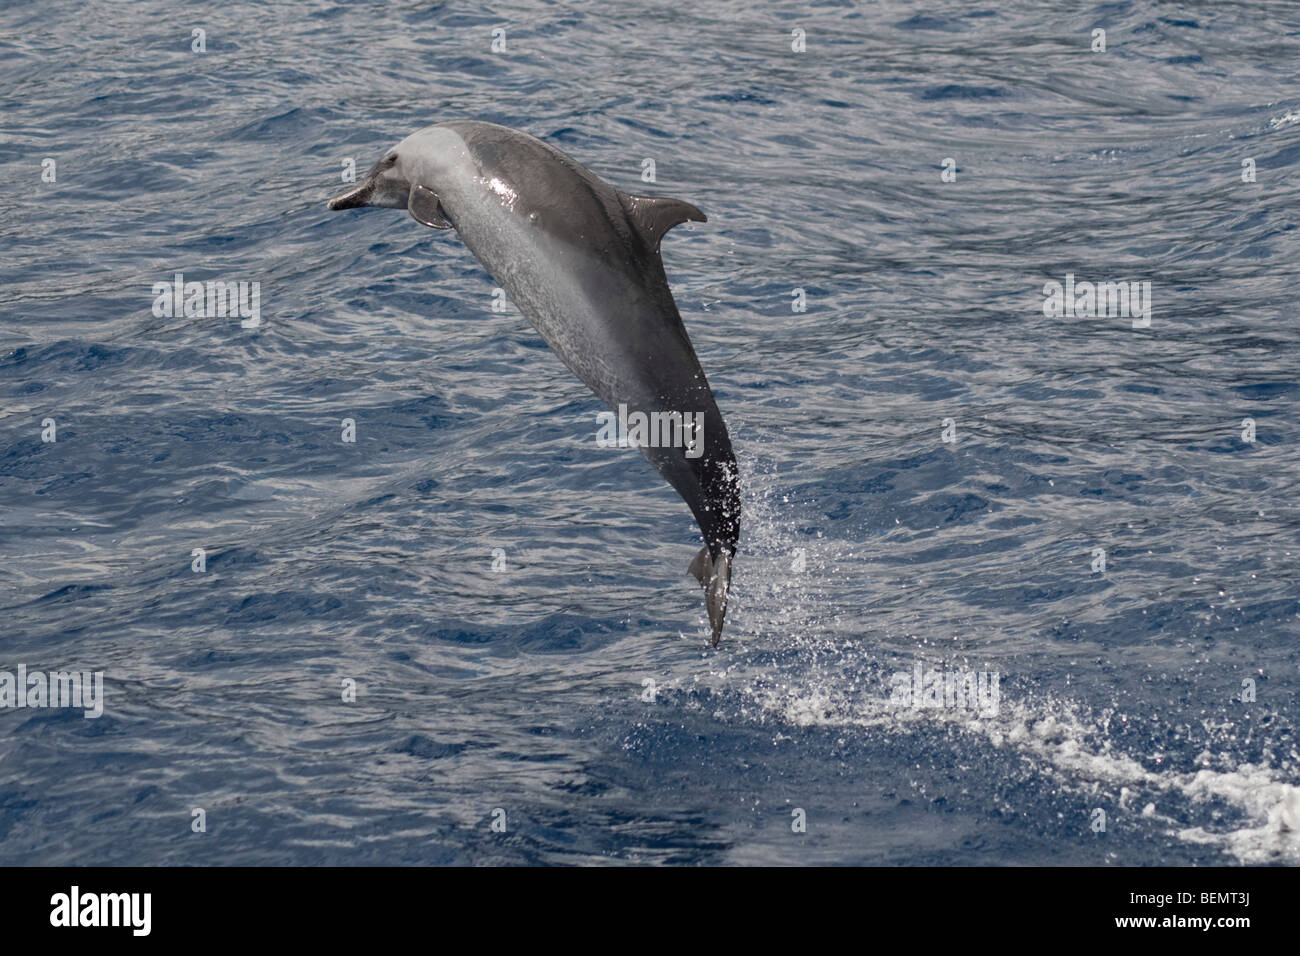 Pantropical Spotted Dolphin, Stenella attenuata, breaching, Island of Saint Helena, South Atlantic Ocean. - Stock Image